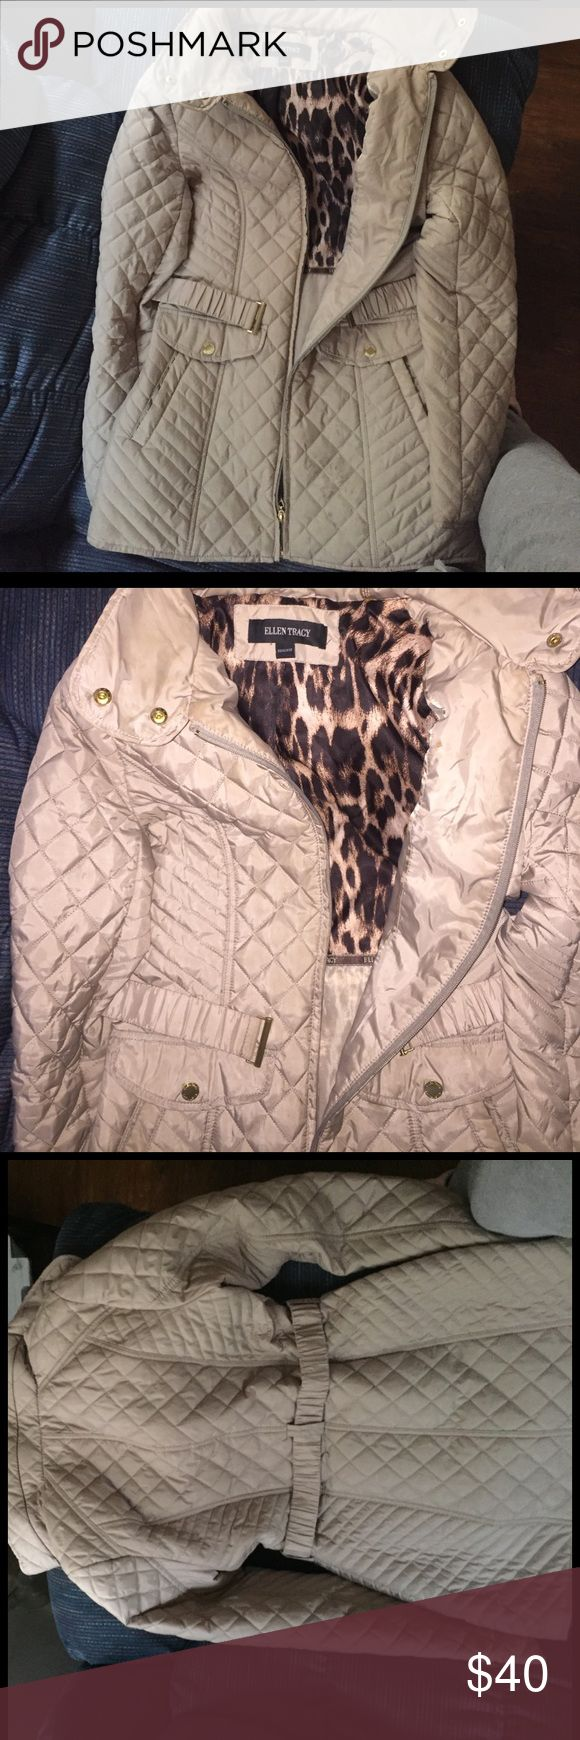 Light cream jacket/ parka Super cute basically new !! Never used it much Ellen Tracy Jackets & Coats